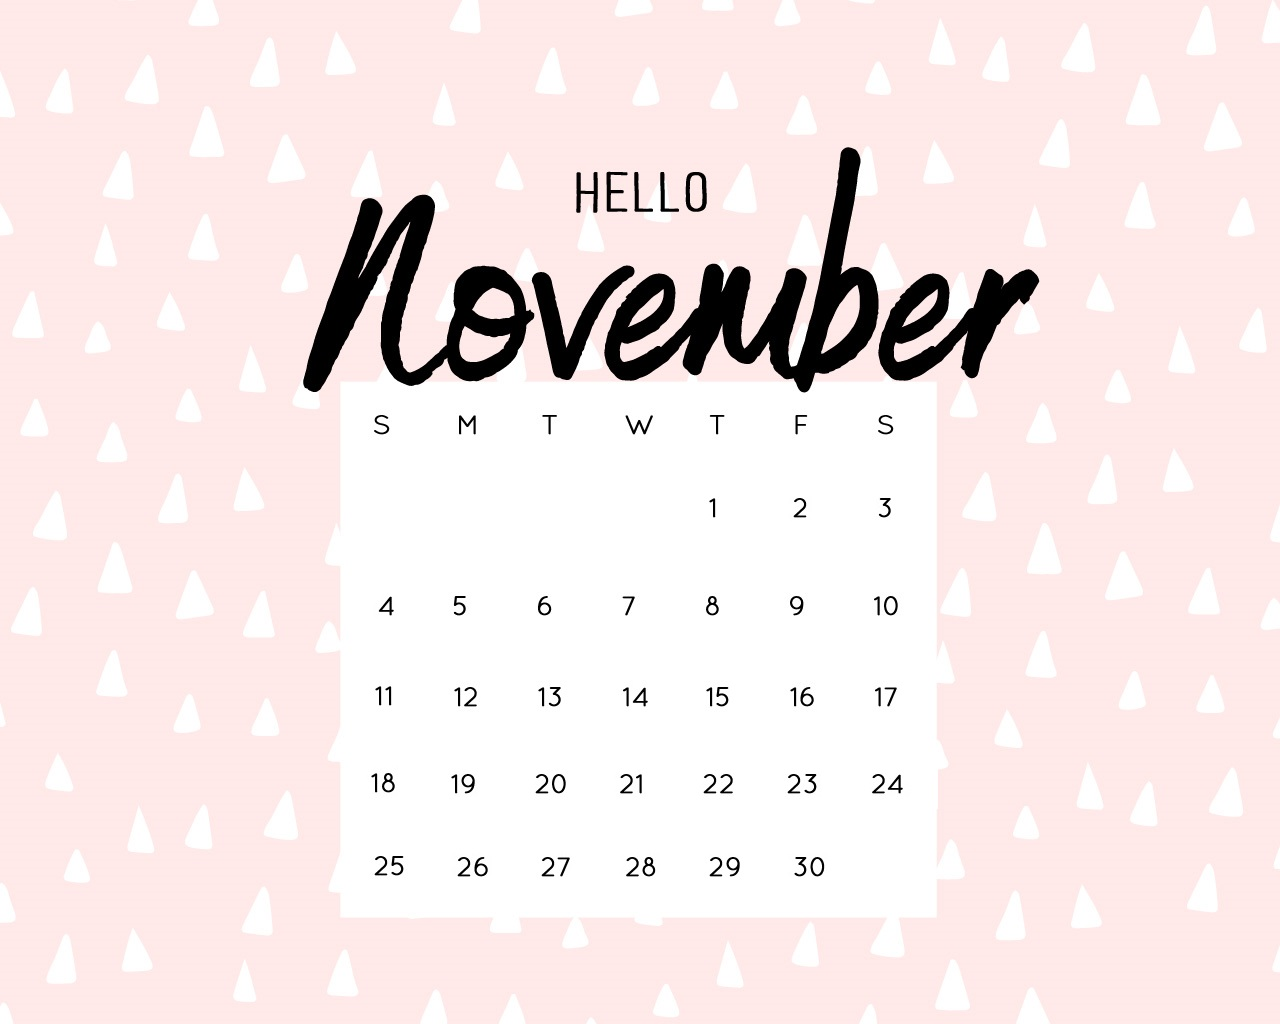 Hello November 2018 iPhone Calendar Wallpapers